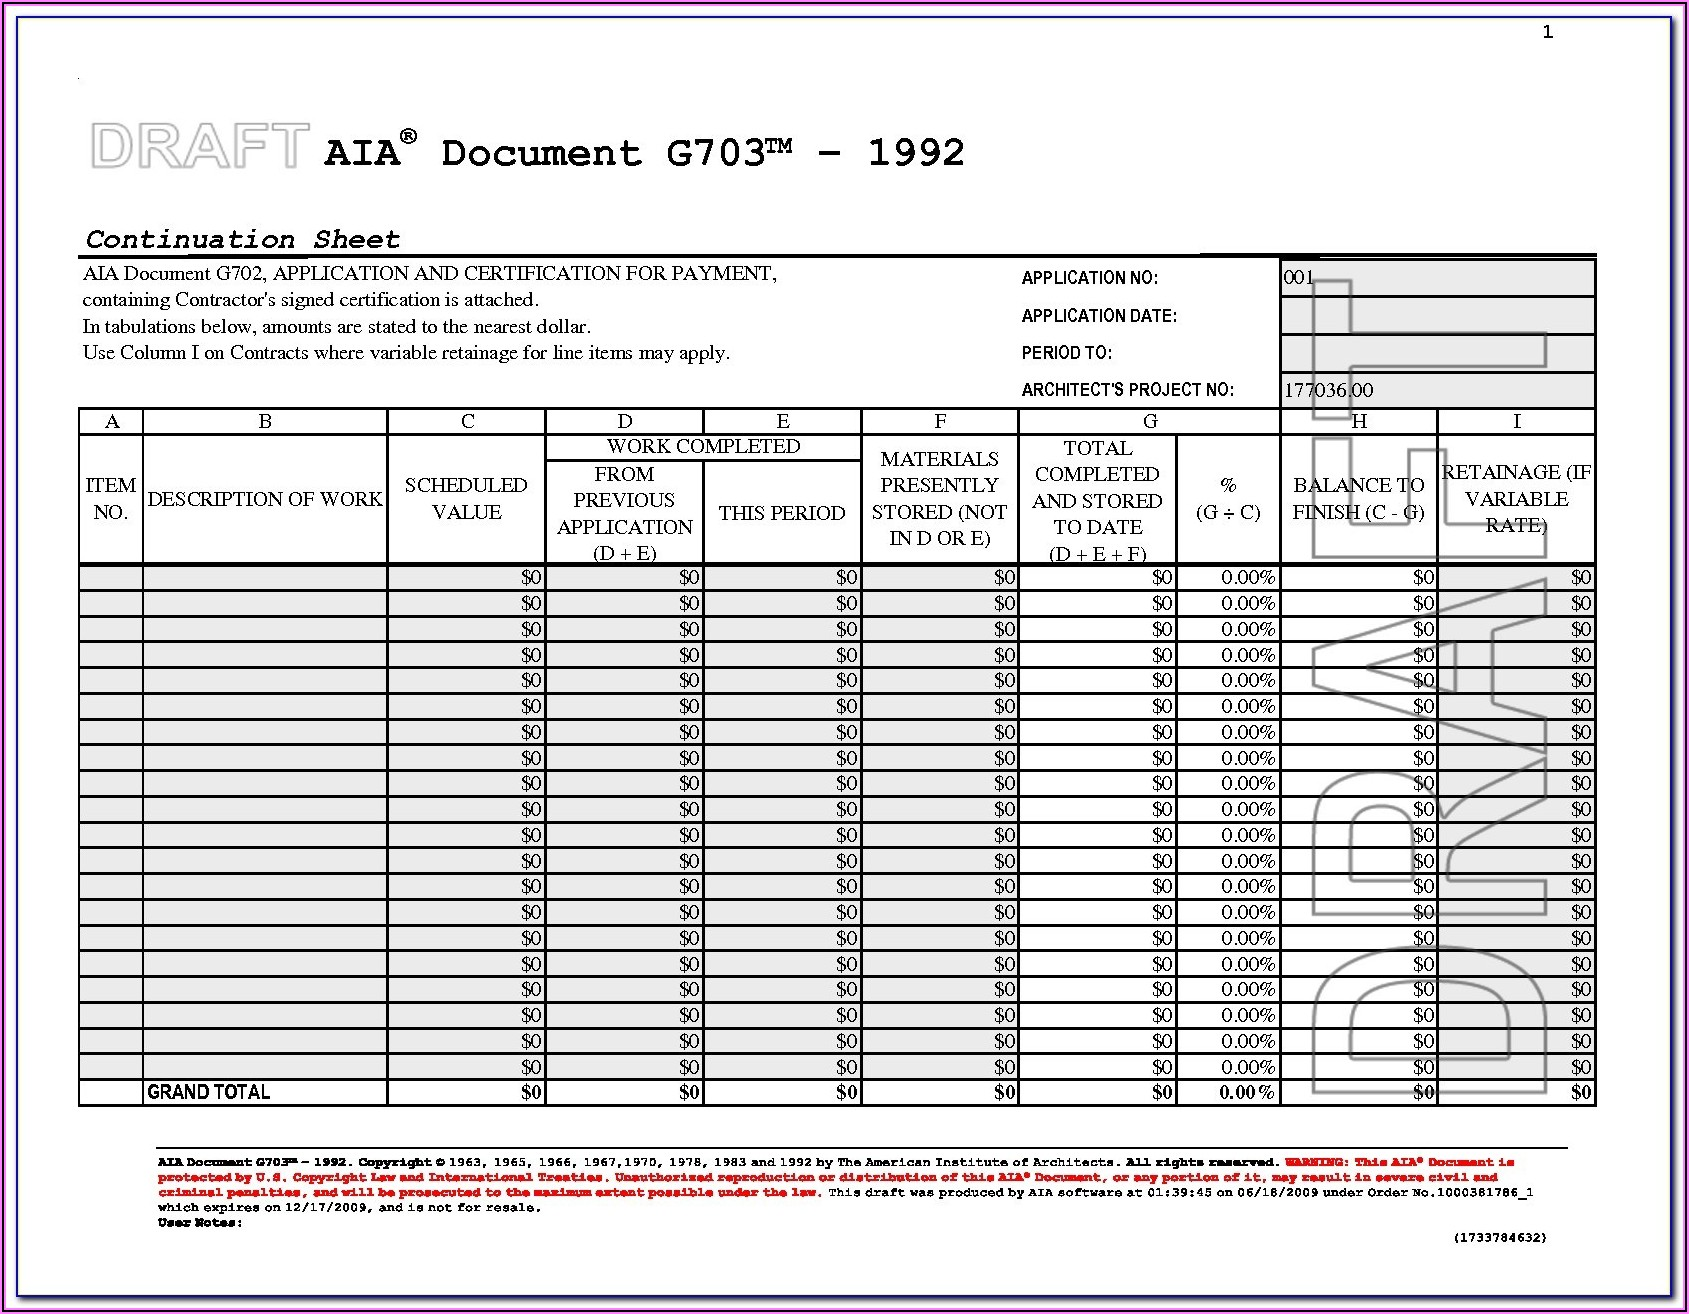 Aia Billing Form G703